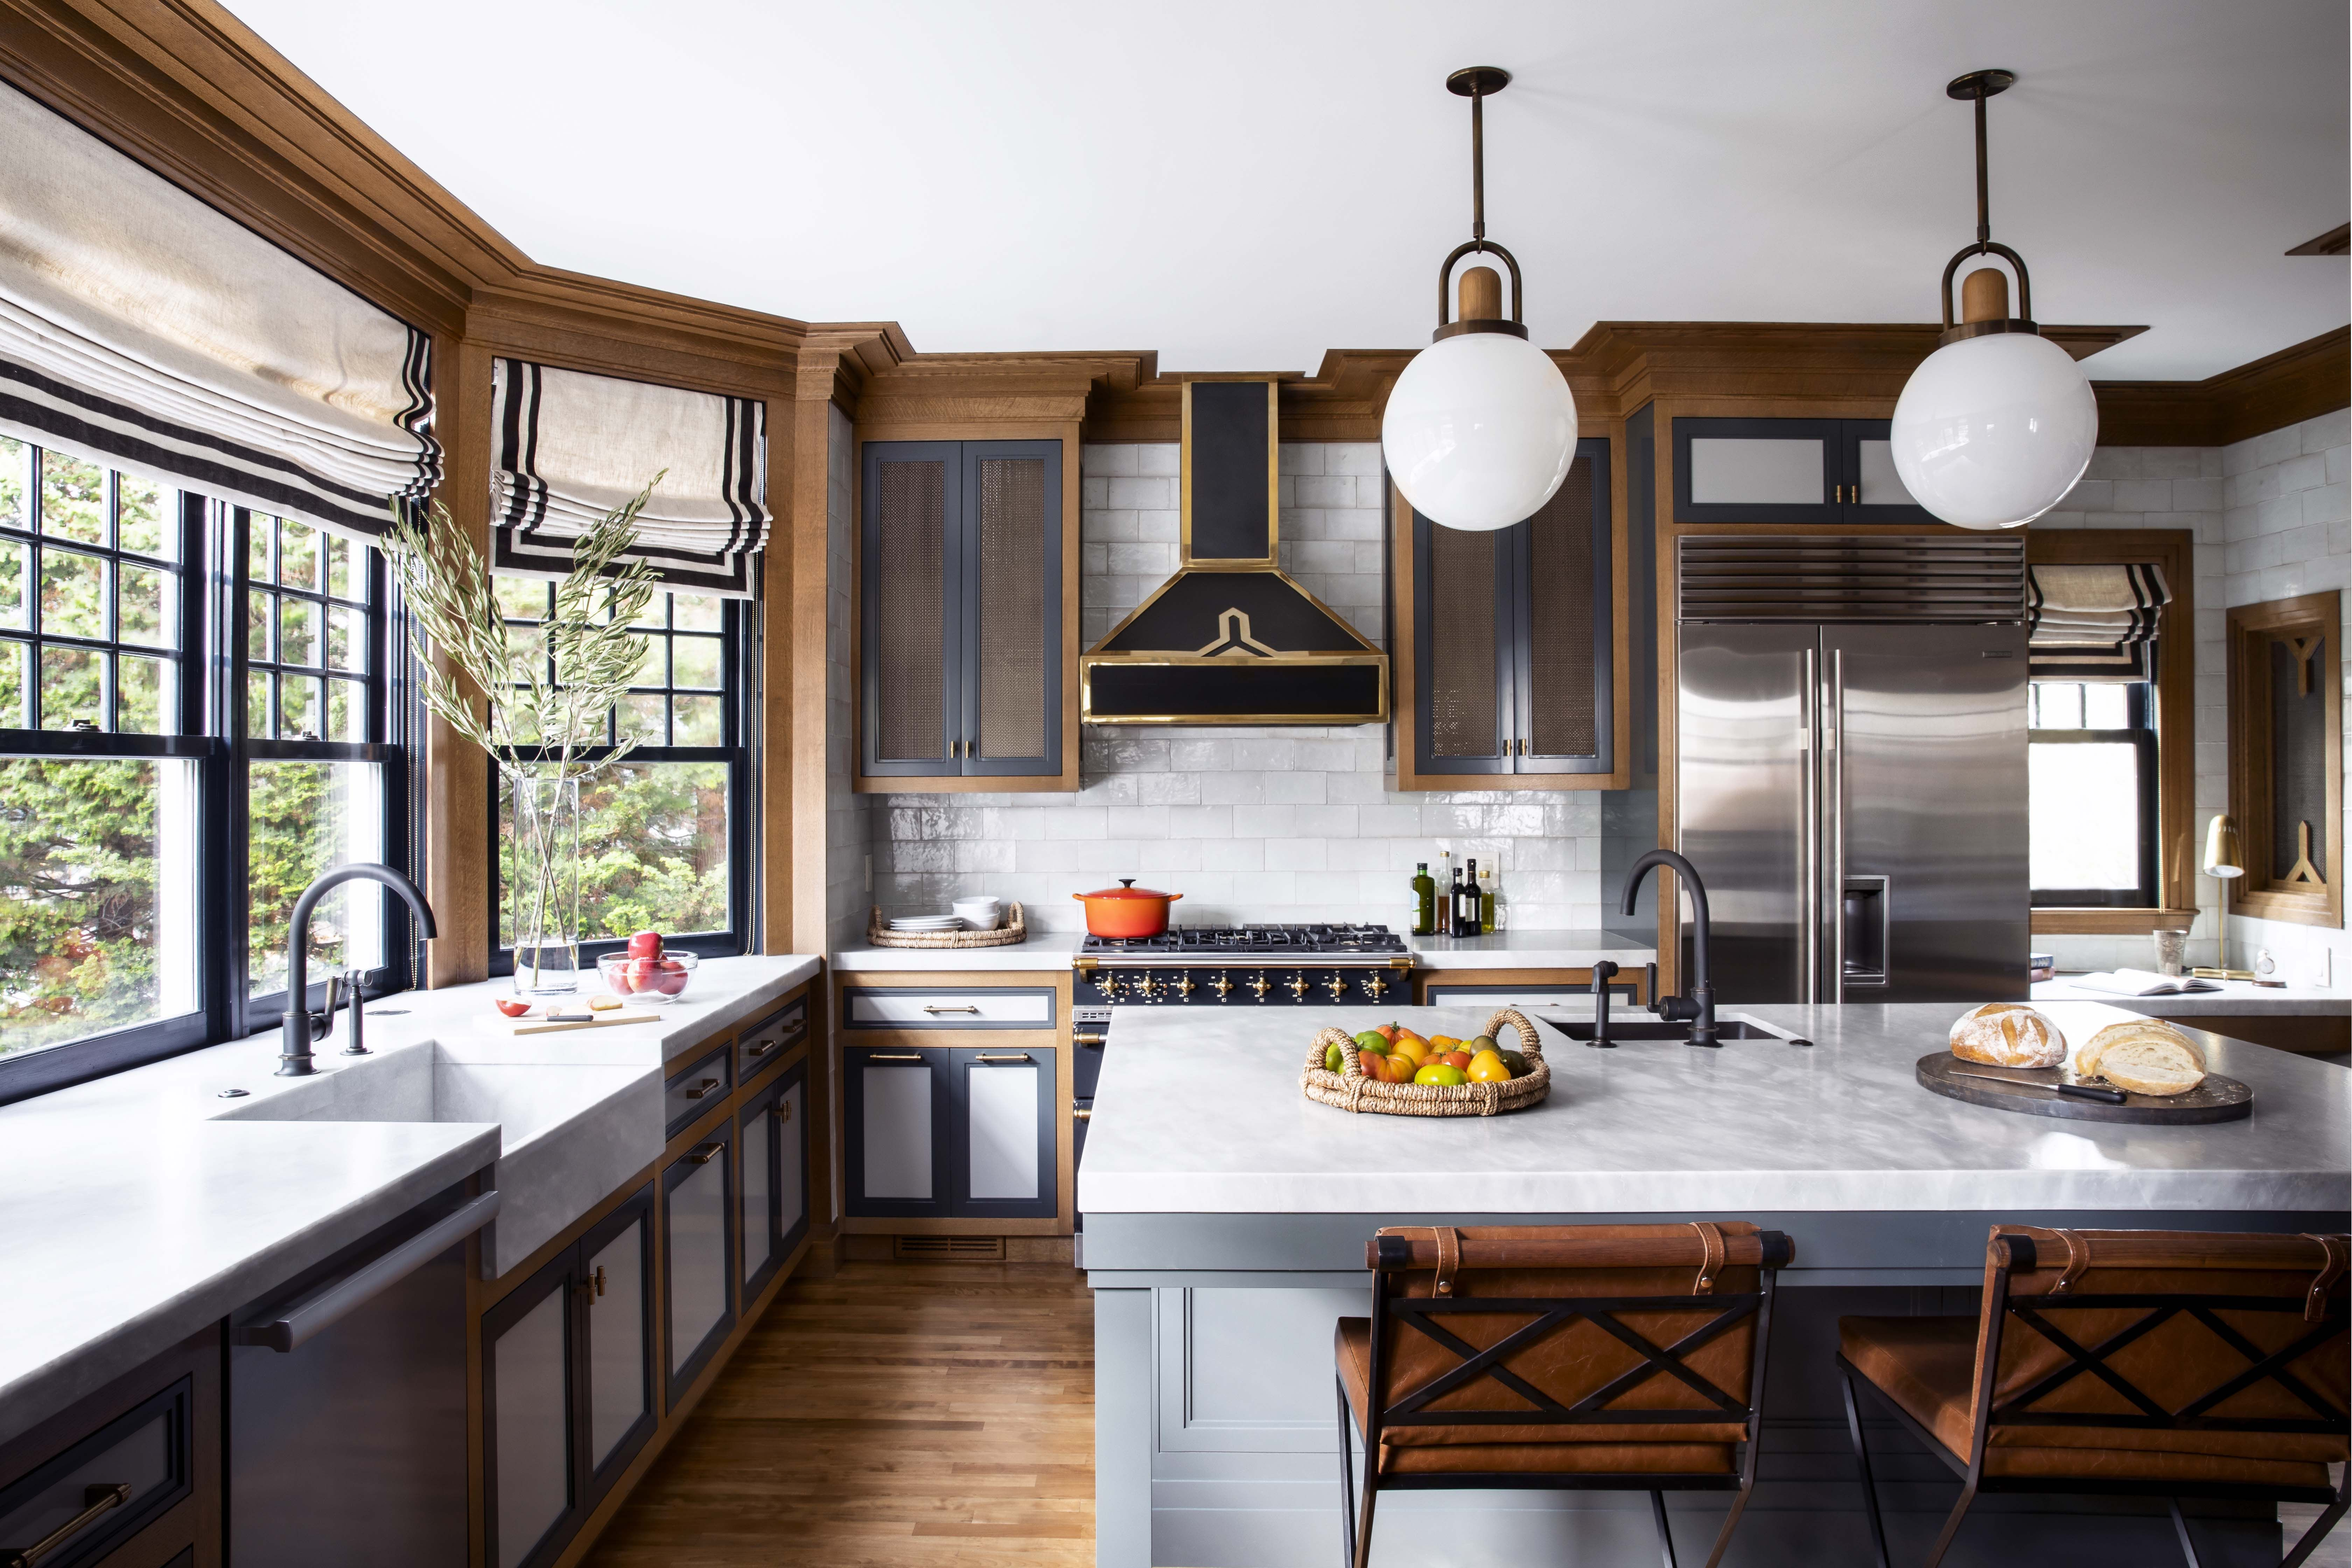 The Cabinets In This Deco Kitchen Are Like Nothing You've Ever Seen